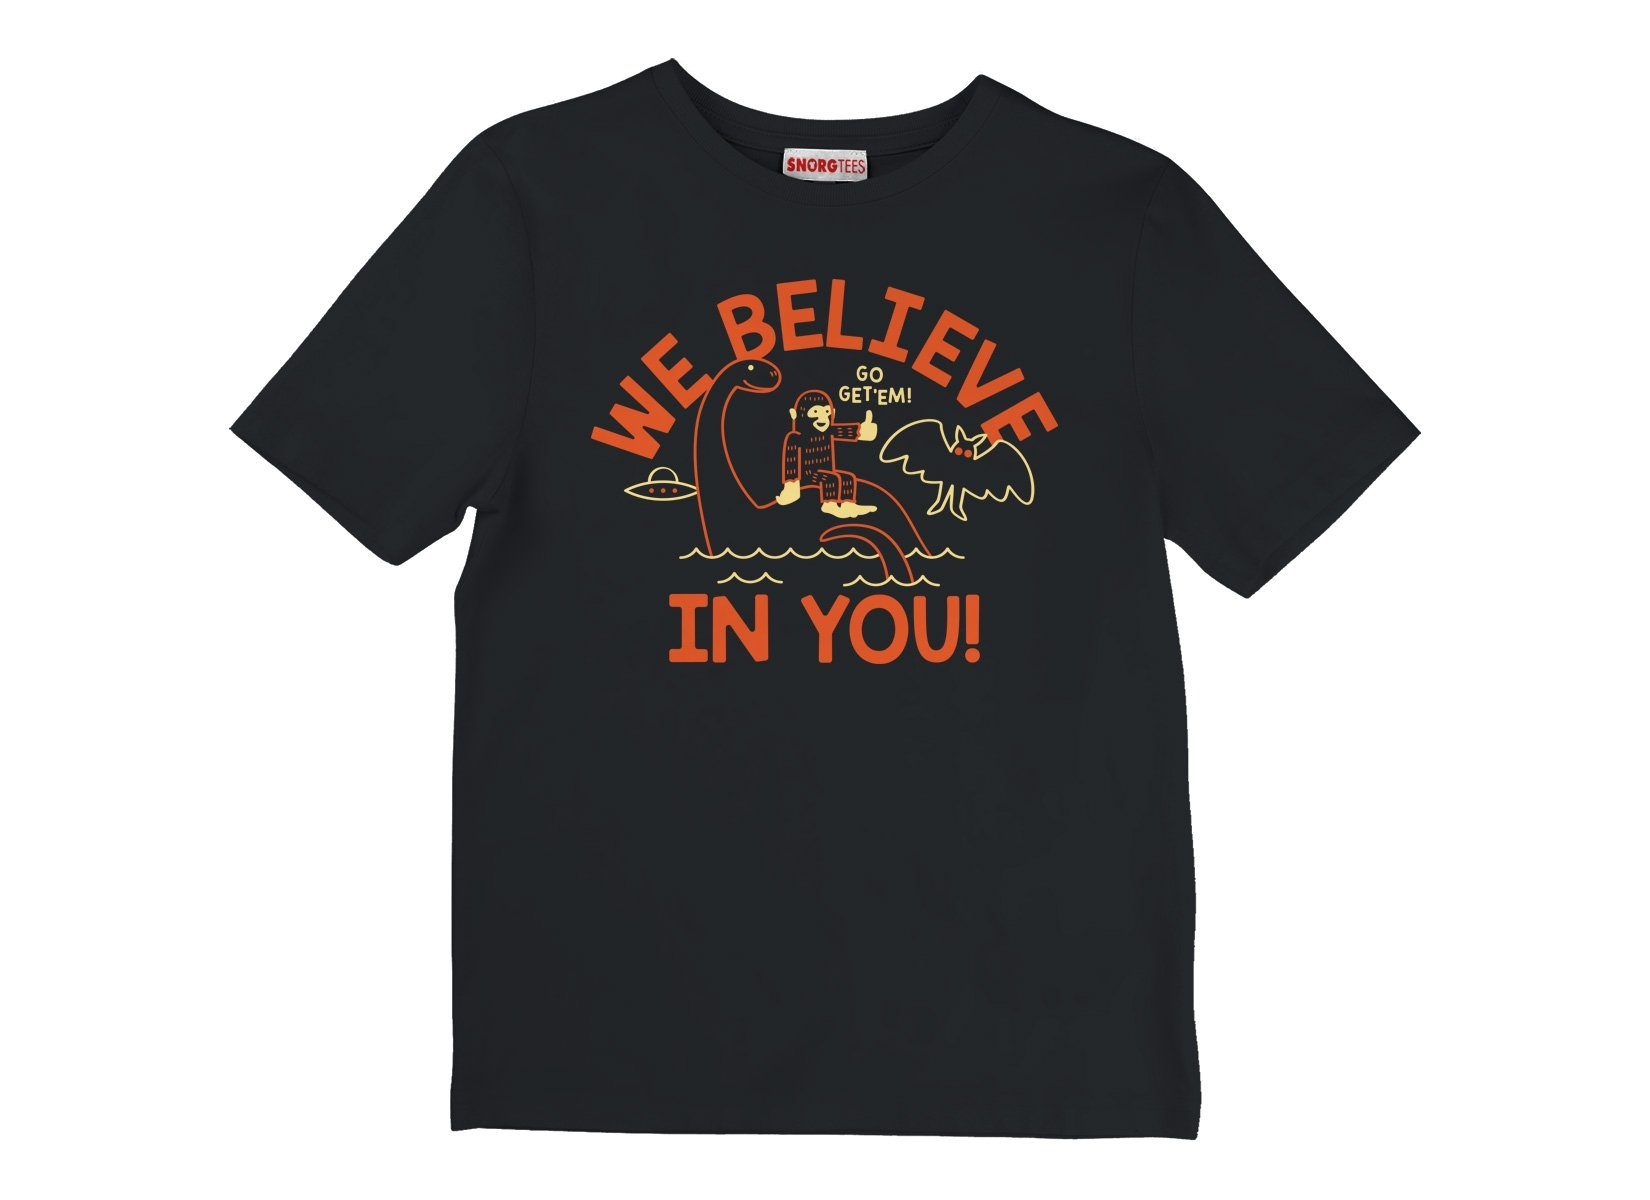 We Believe In You! on Kids T-Shirt